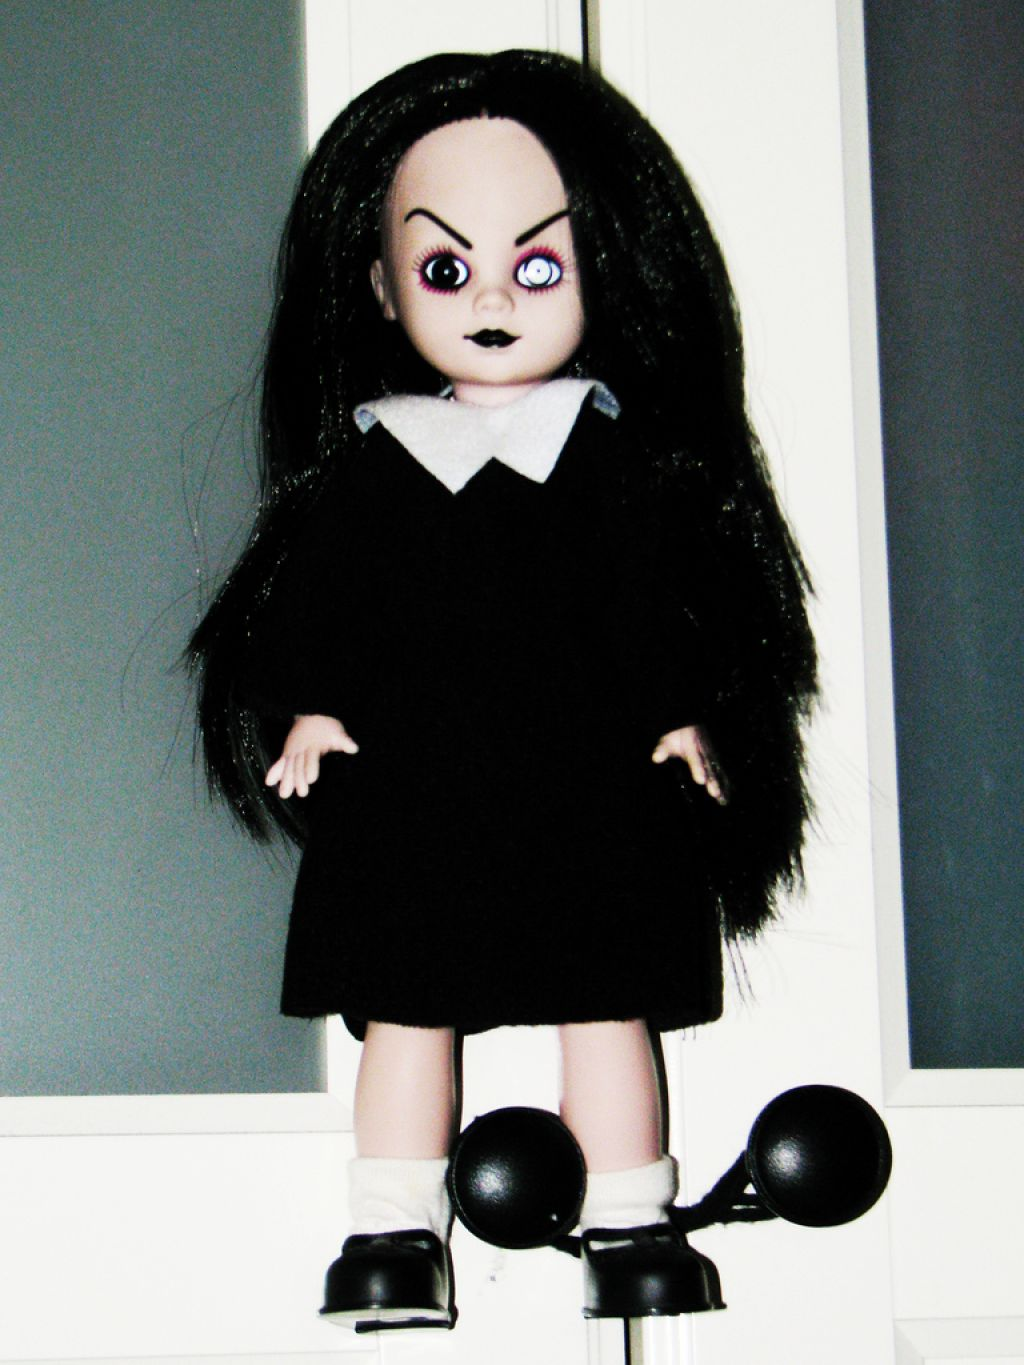 living dead doll15 Morbid Living Dead Dolls